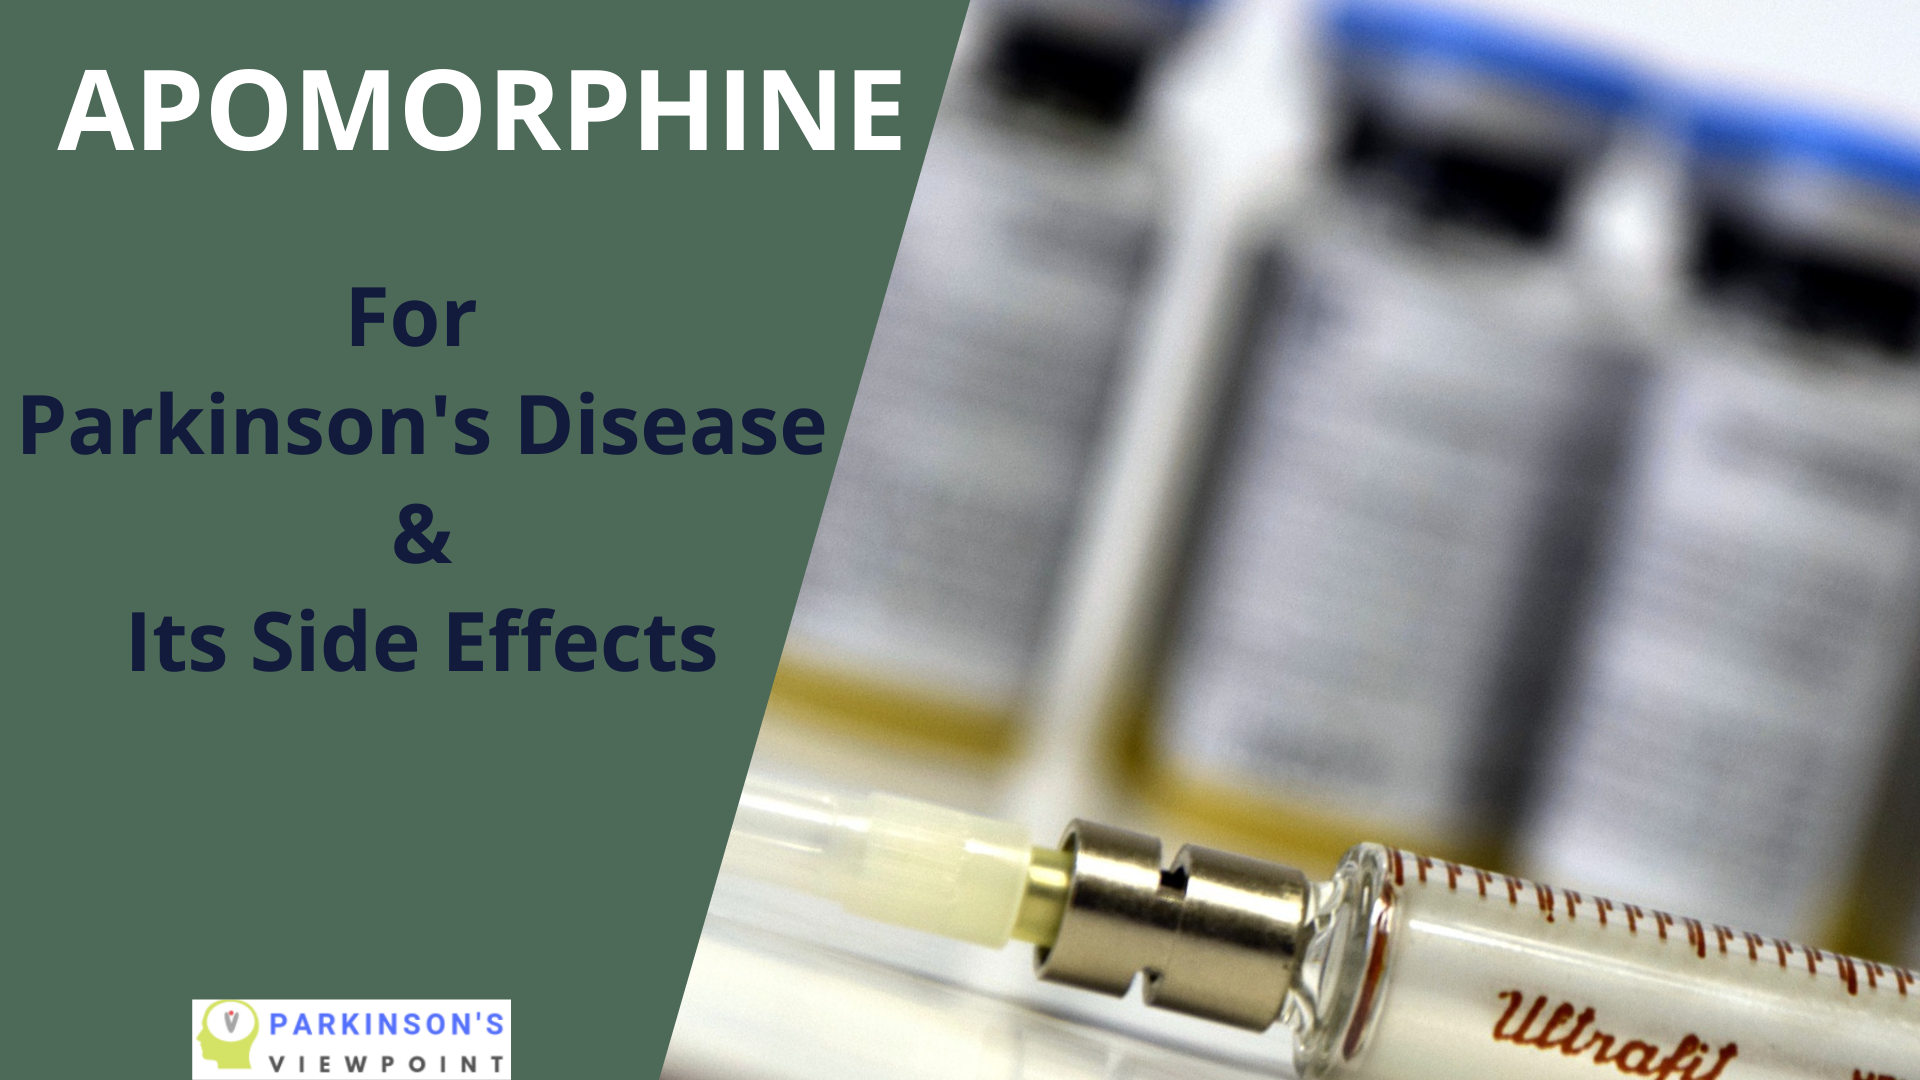 The Use of Apomorphine and its Side Effects in Parkinson's Disease